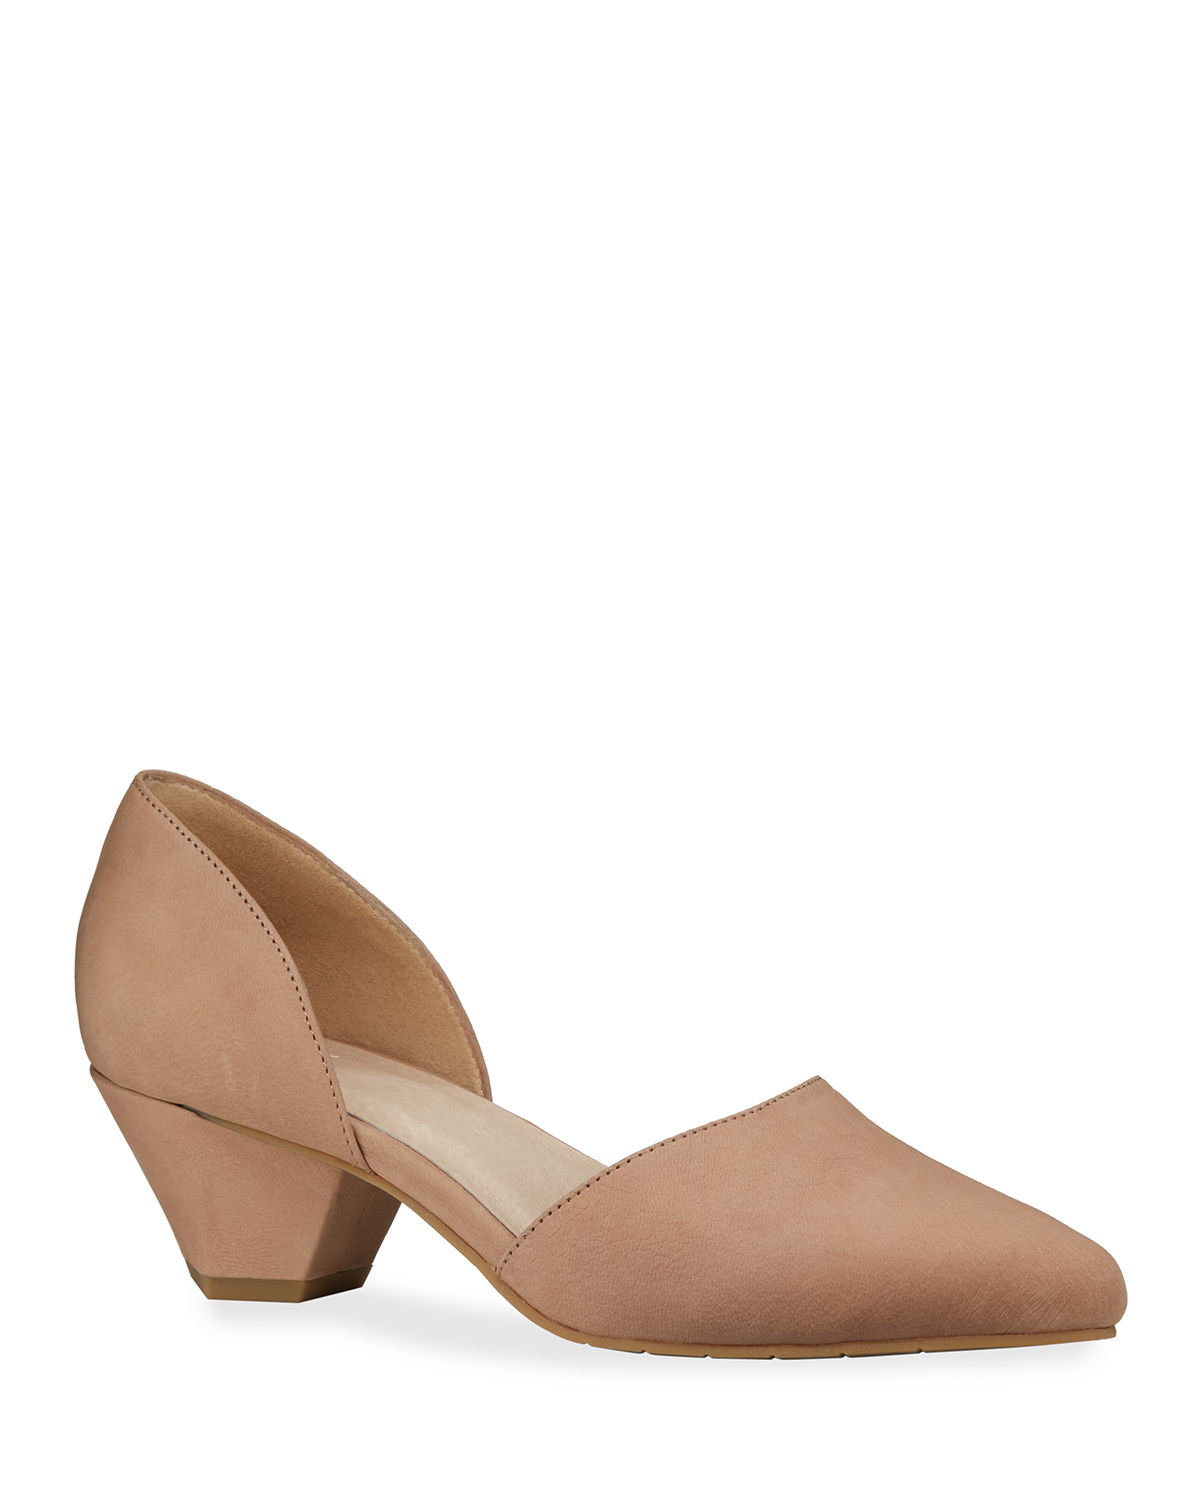 Eileen Fisher Pumps RUMI LOW-HEEL NUBUCK PUMPS